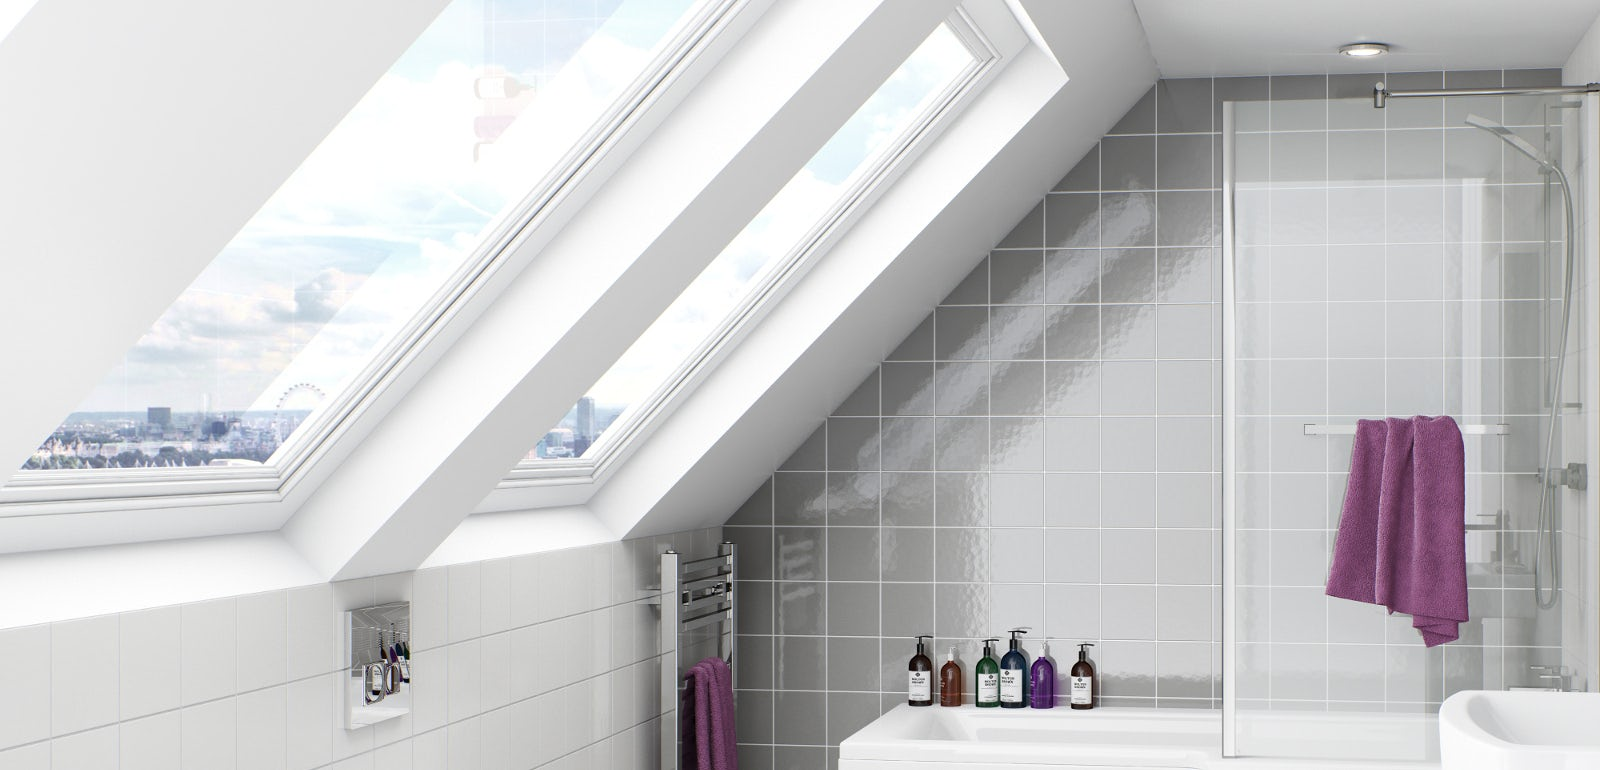 Baths v showers: Which side are you on?